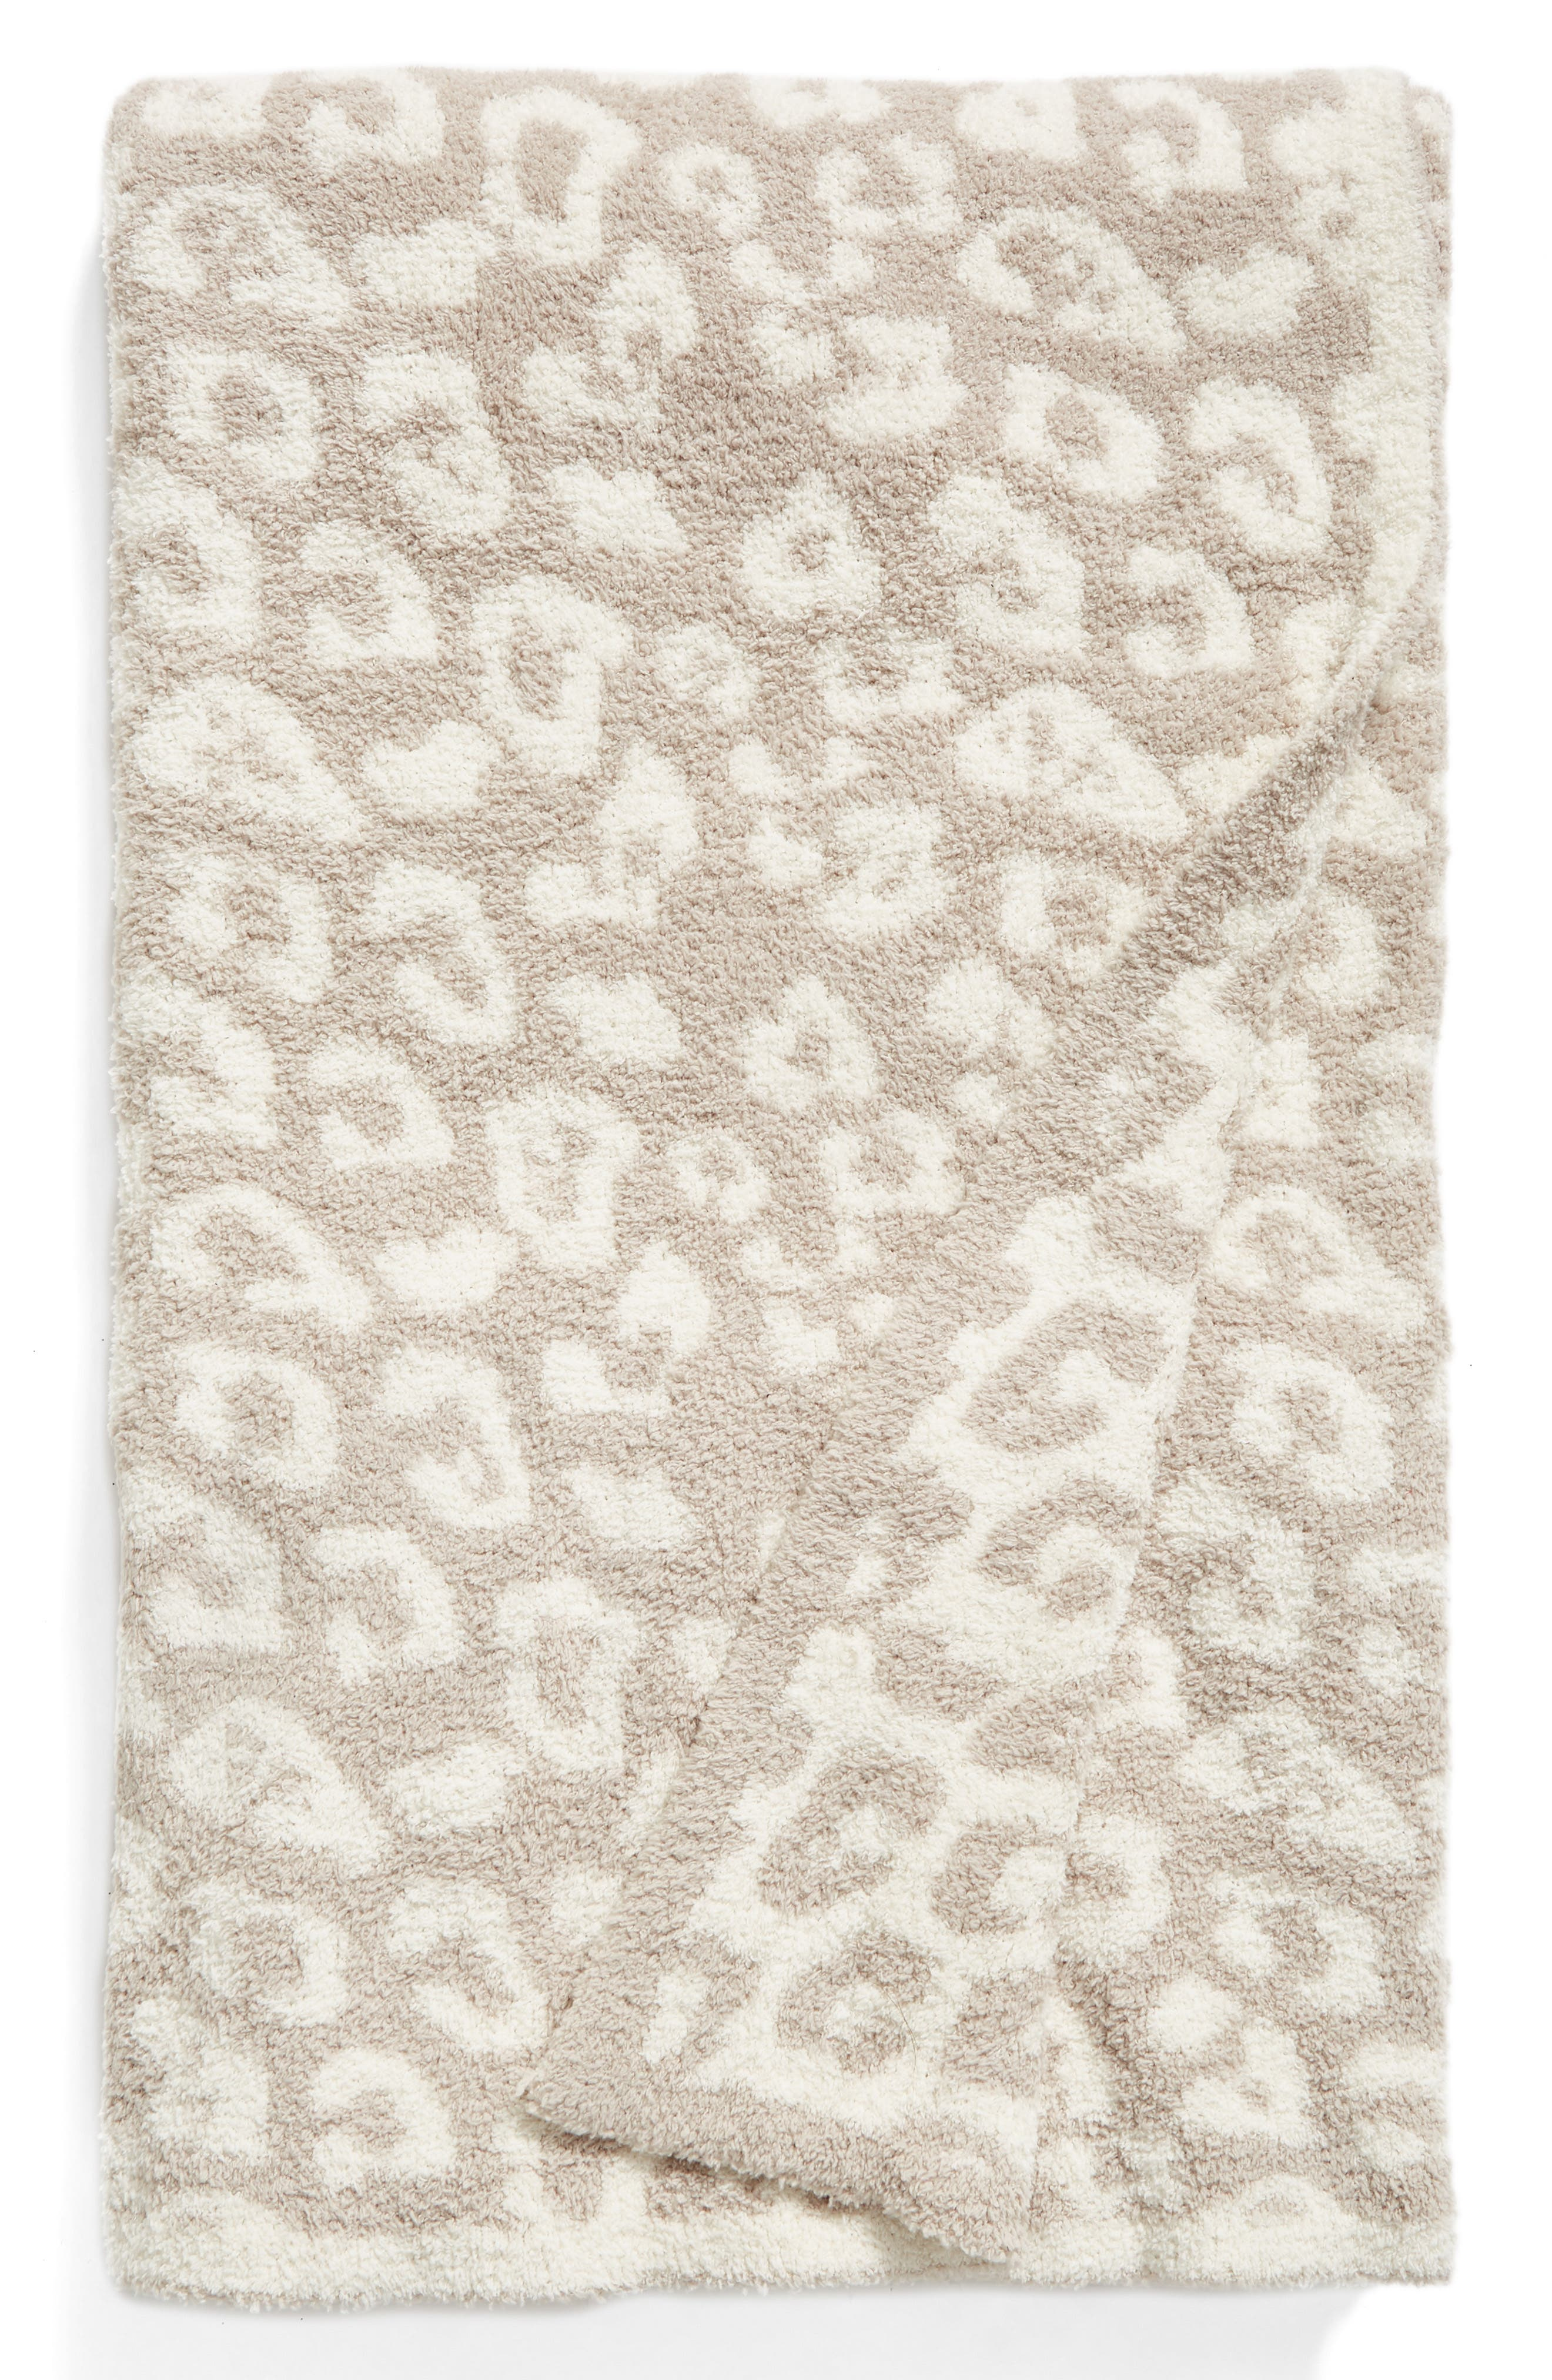 CozyChic 'In the Wild' Throw Blanket,                         Main,                         color, STONE/ CREAM